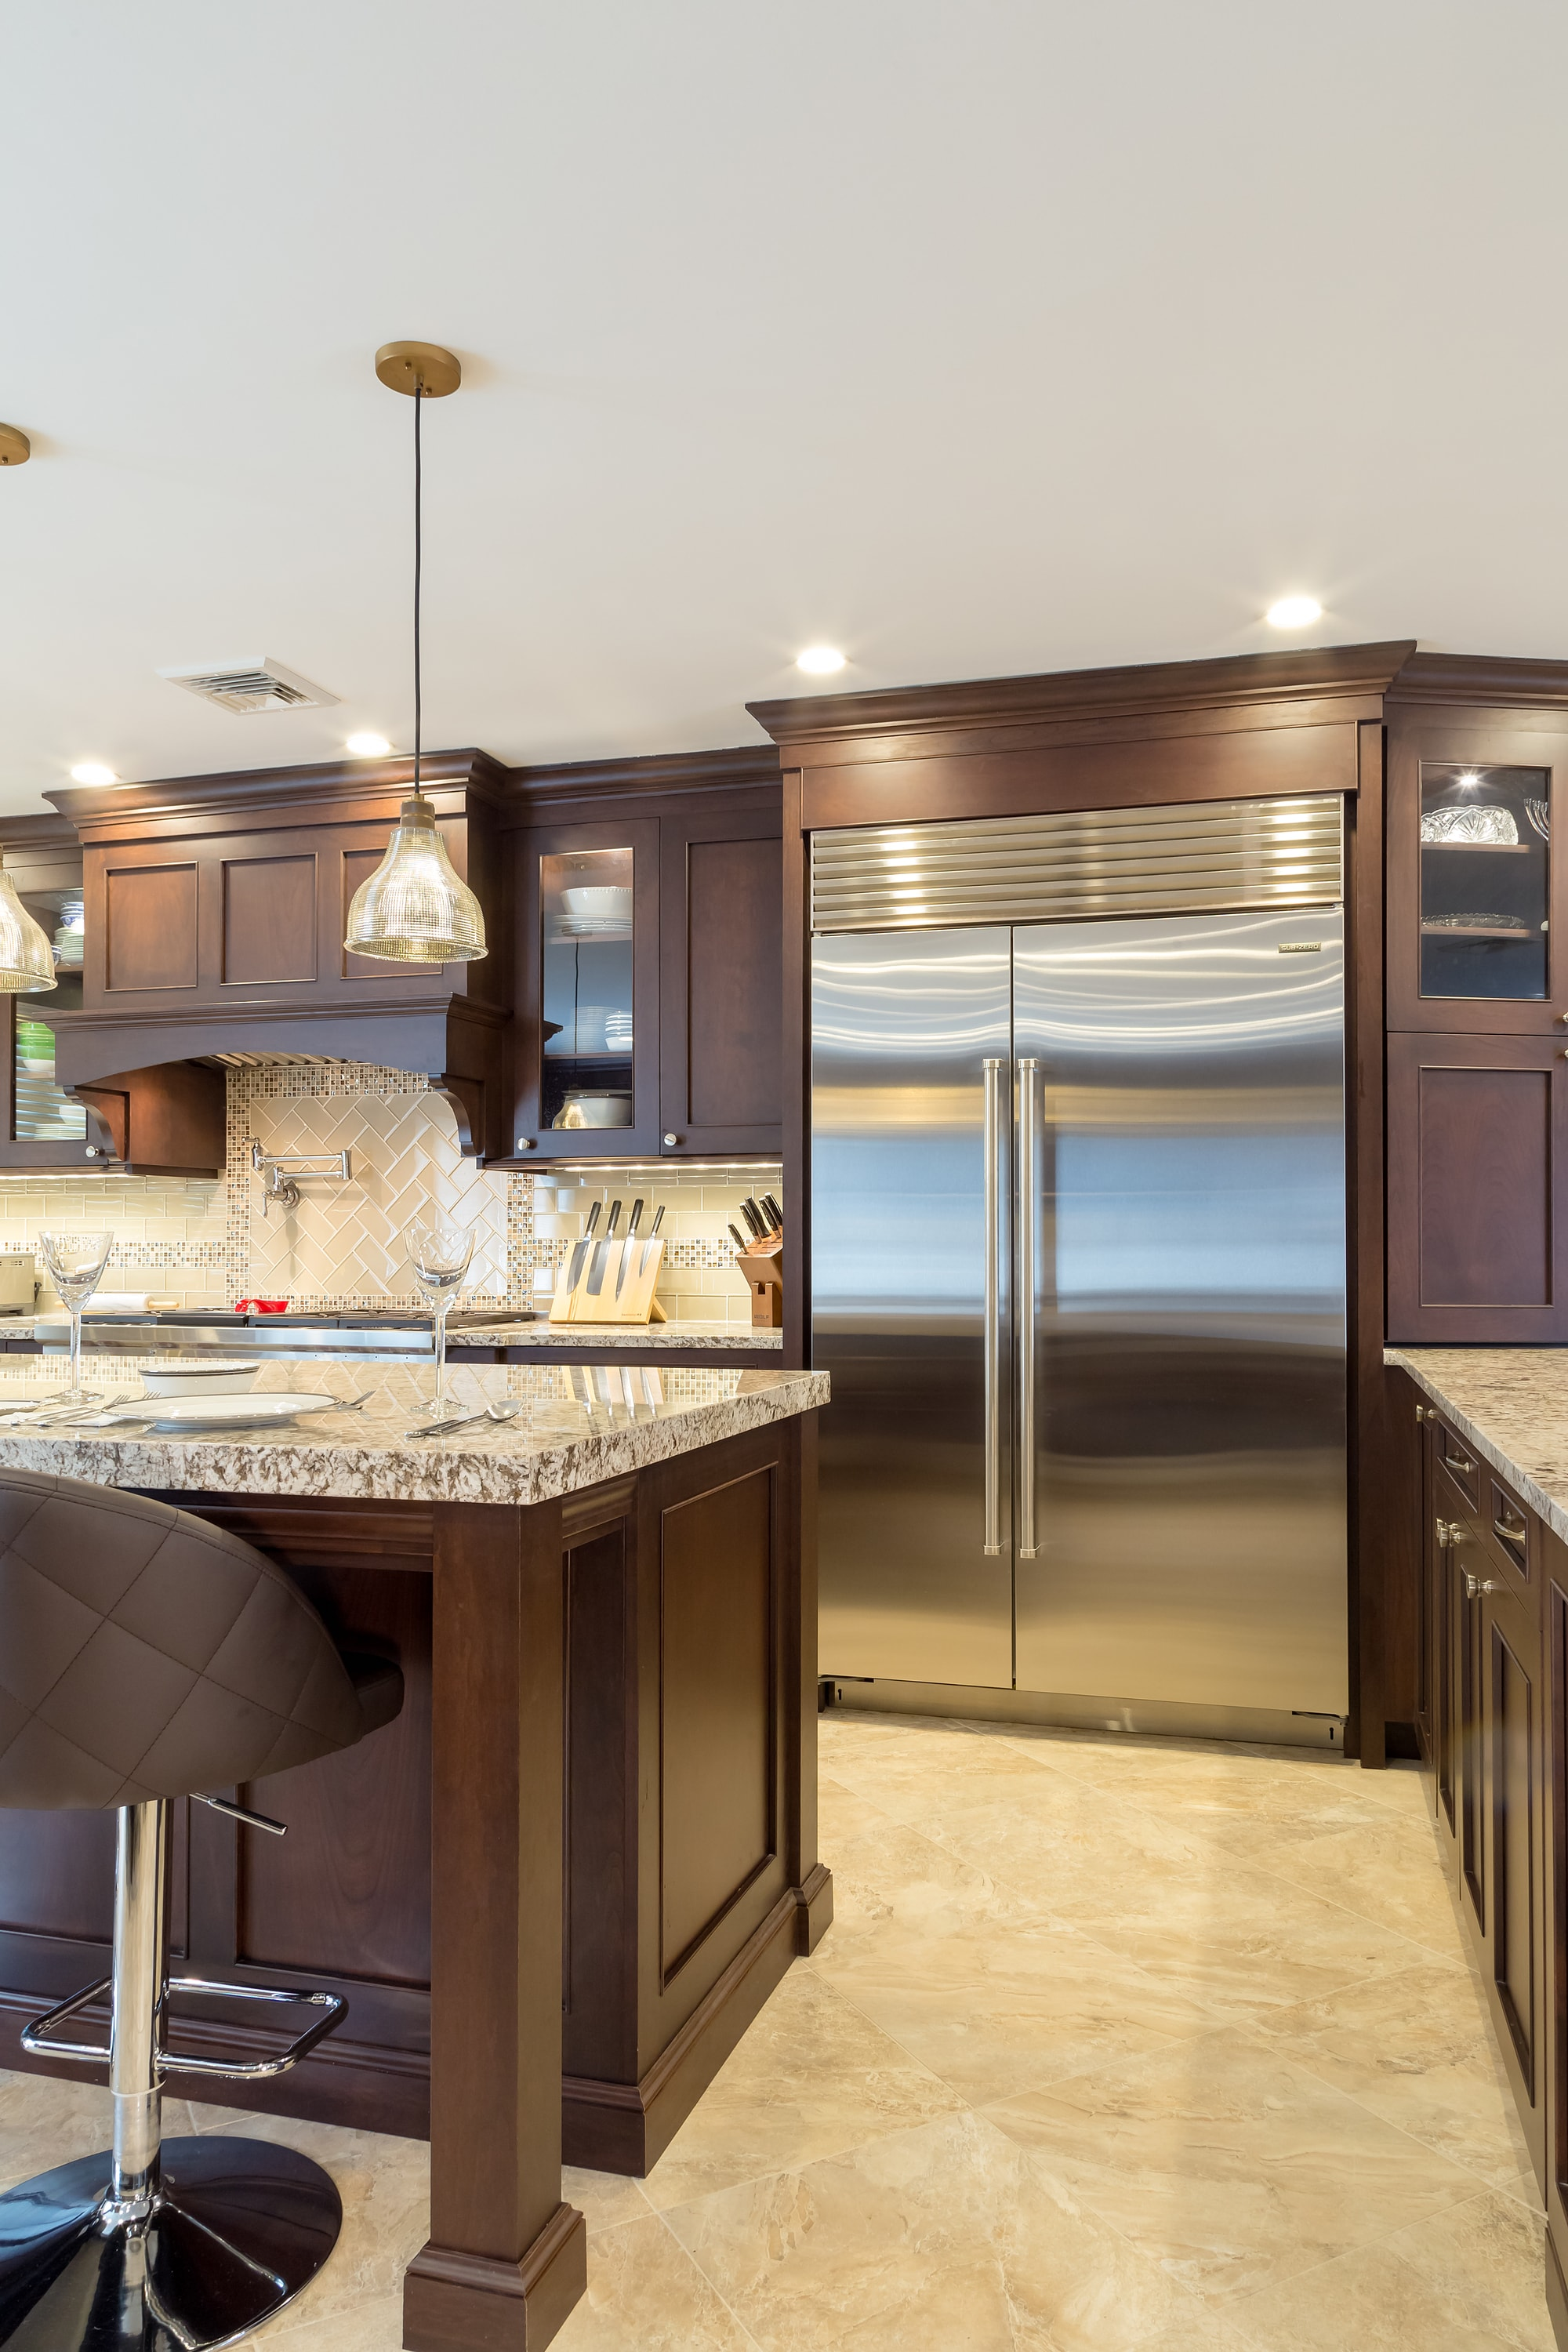 Traditional style kitchen with  with family size refrigerator